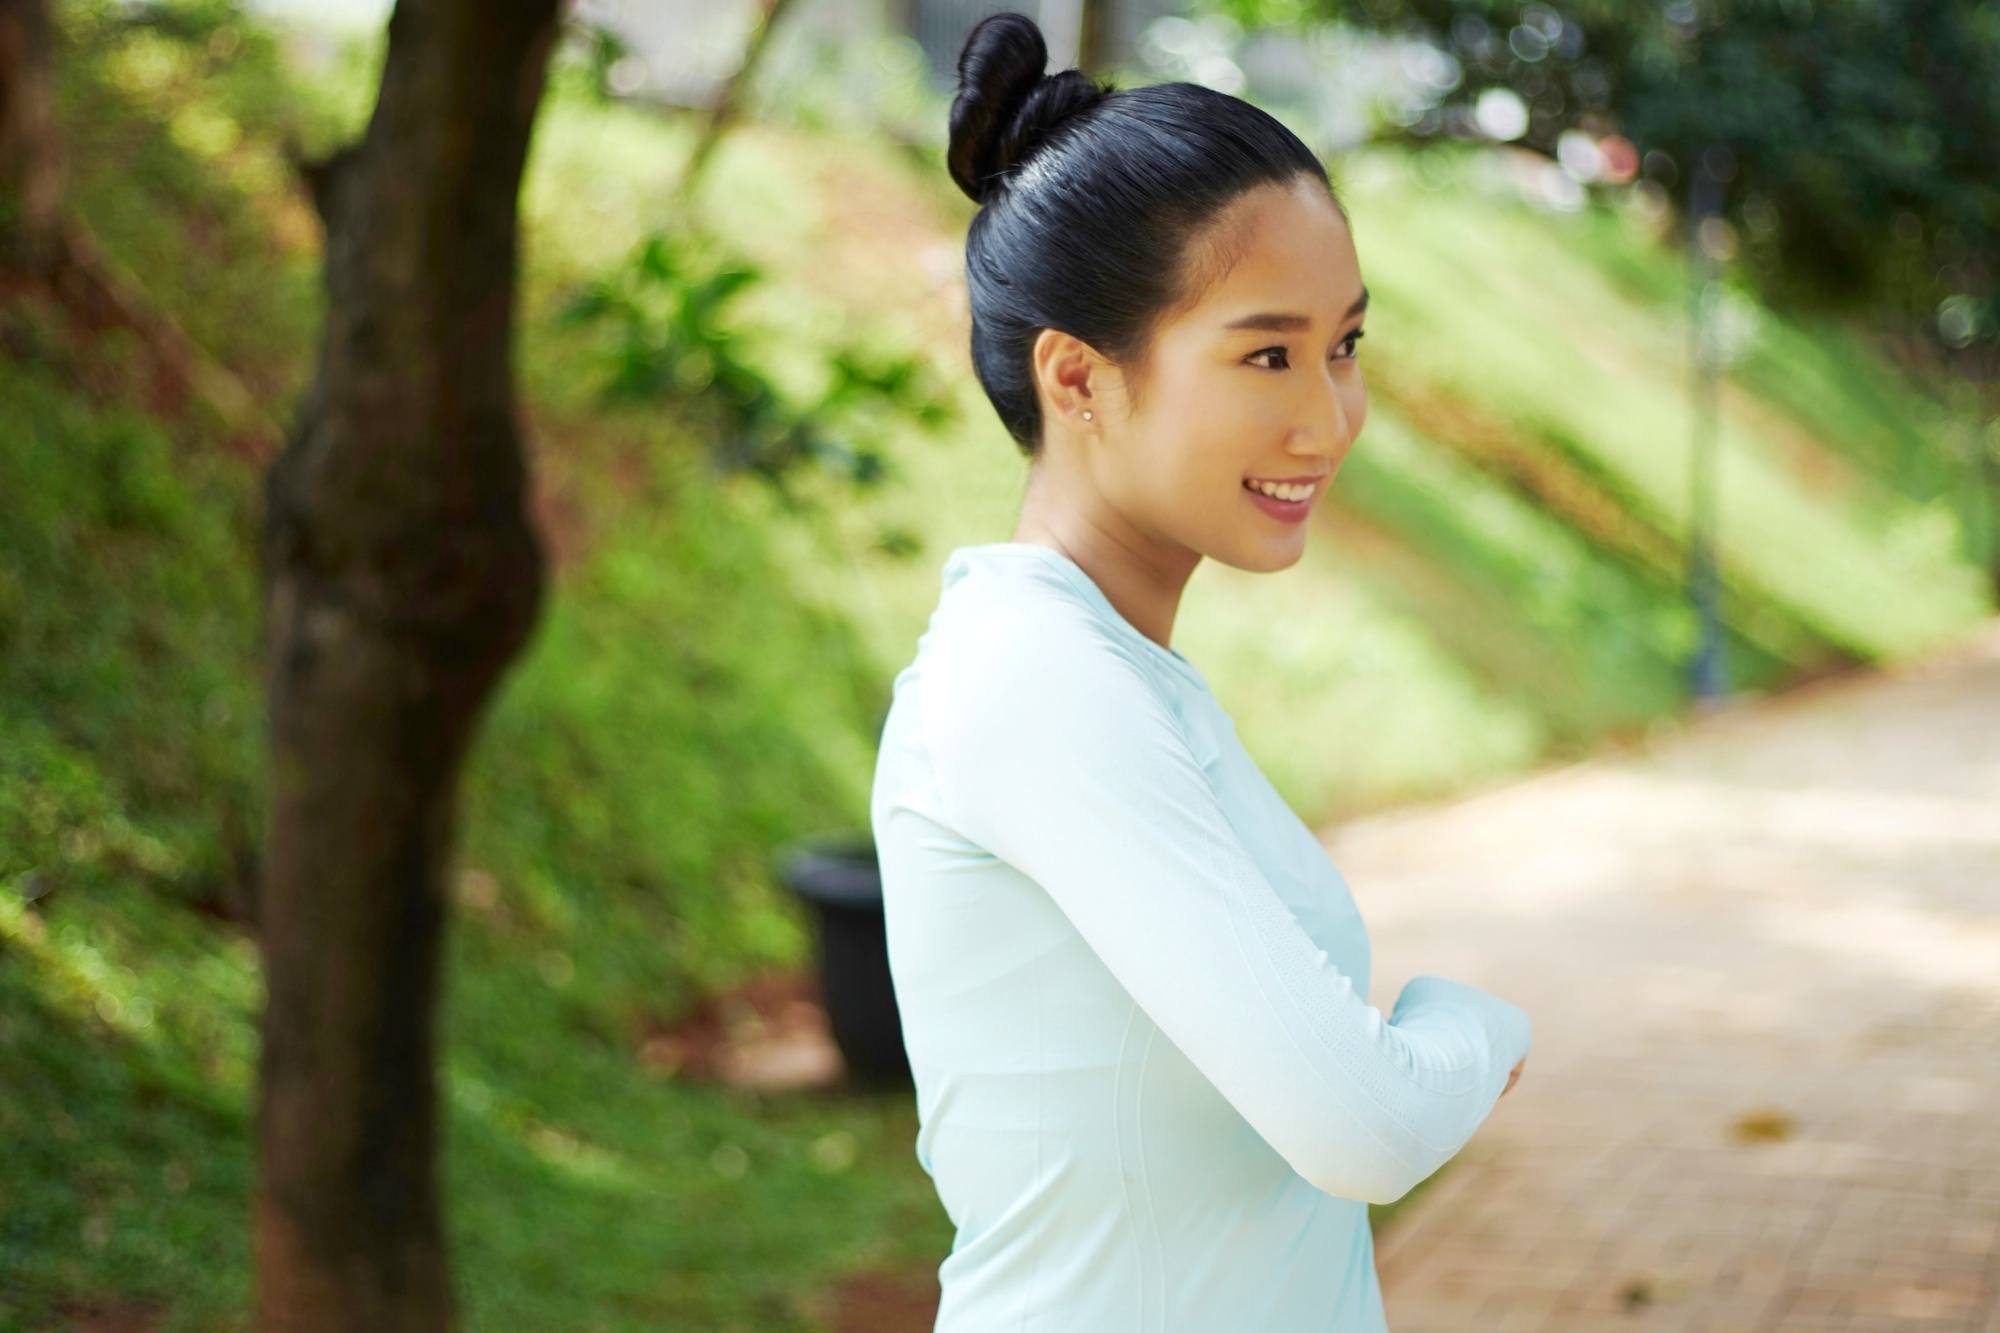 International Women's Day: Asian woman with black hair in a ballerina bun wearing a long-sleeved top outdoors